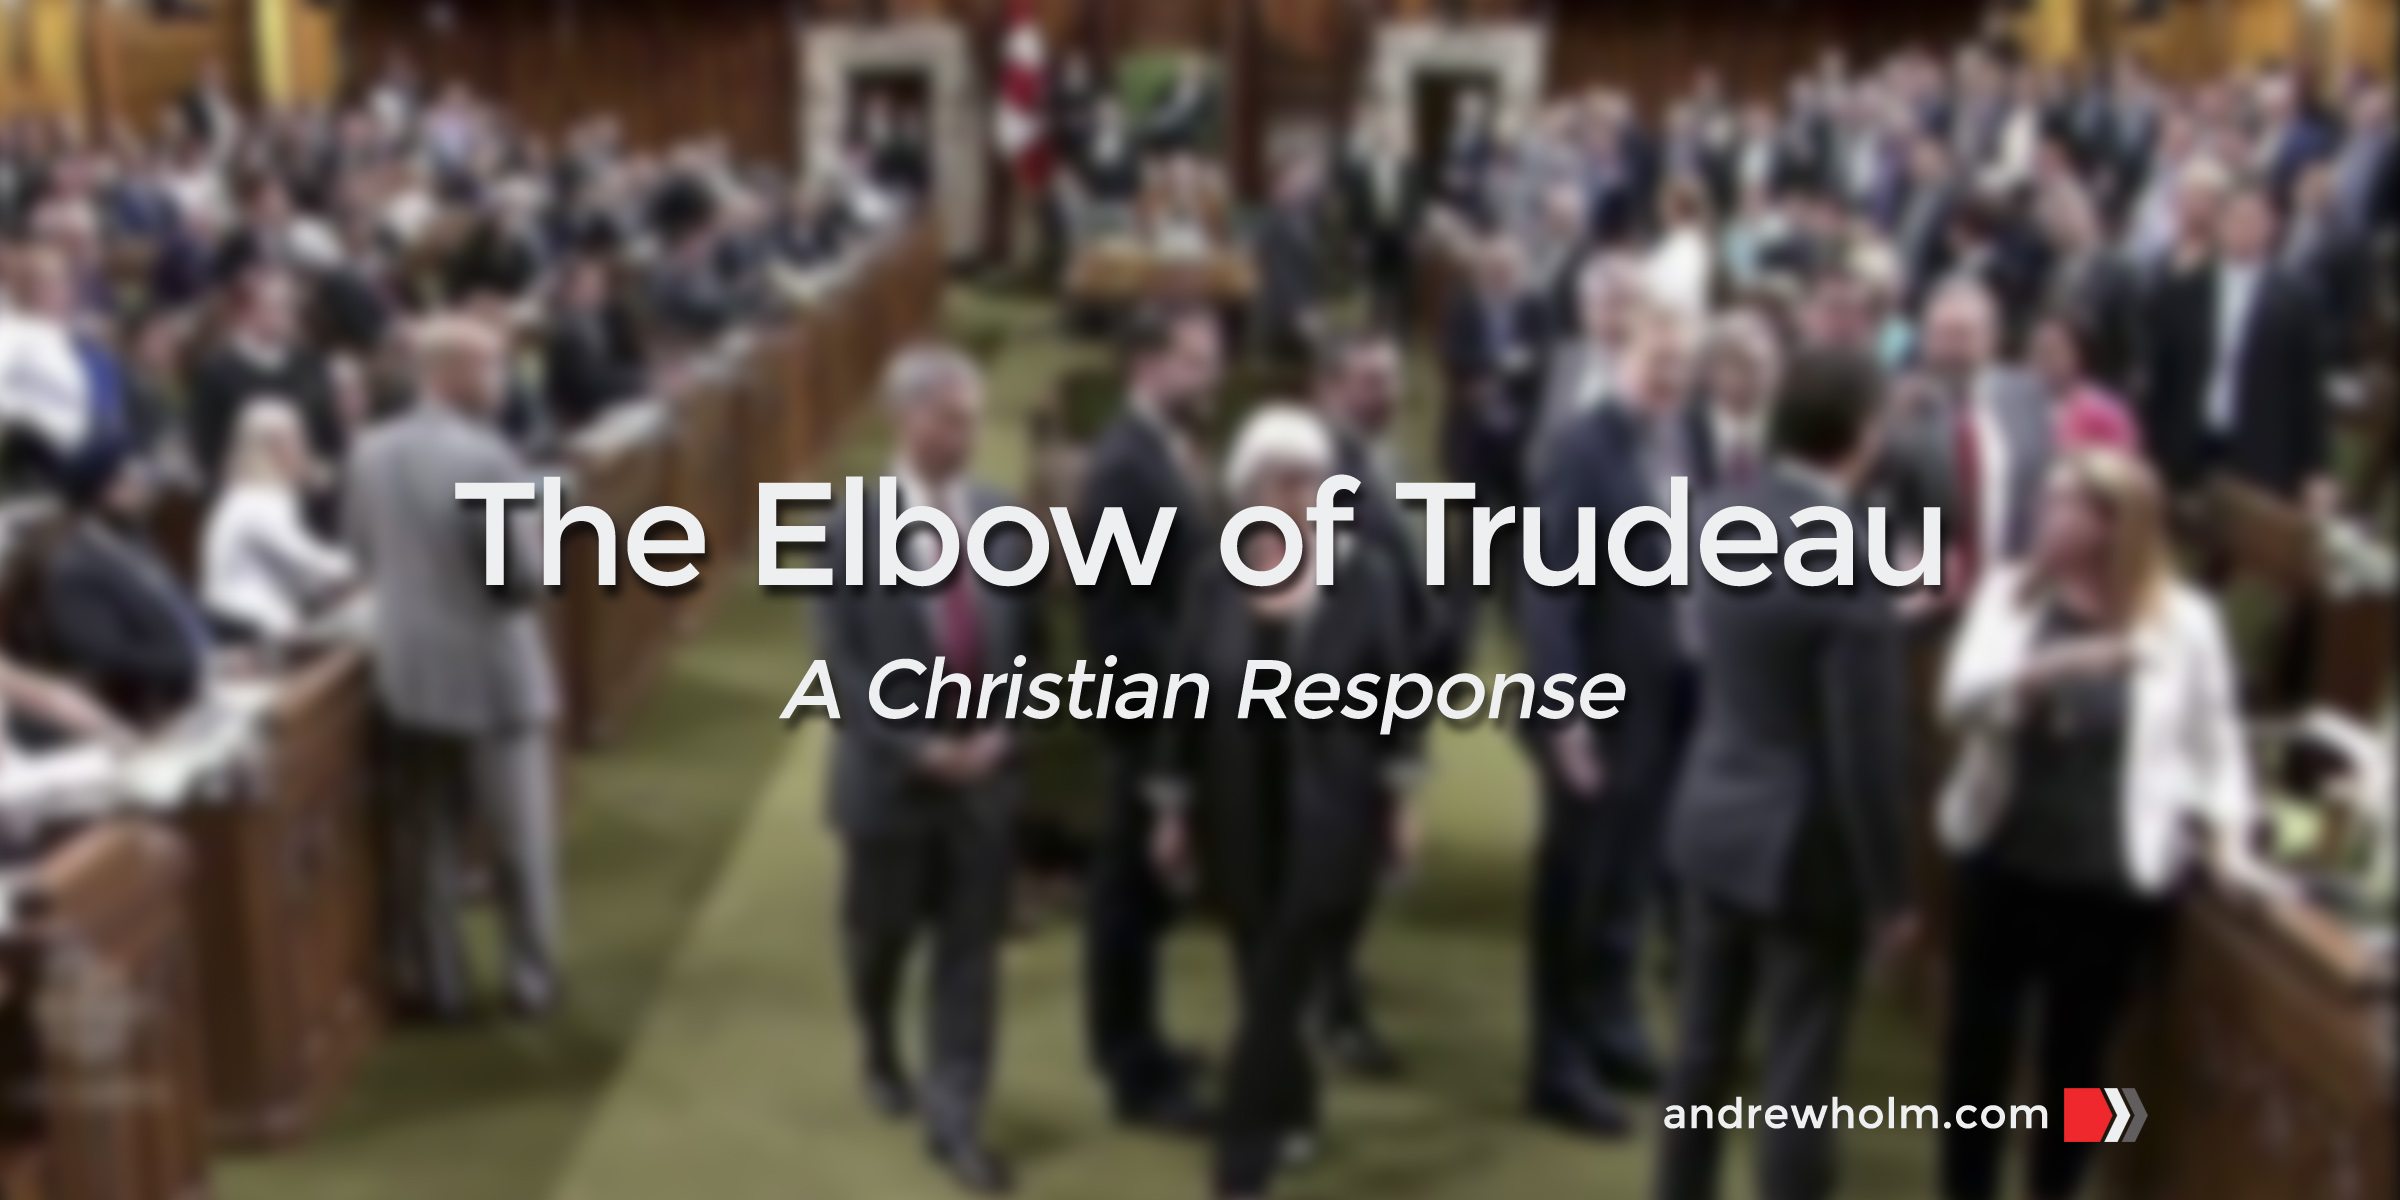 The Elbow of Trudeau